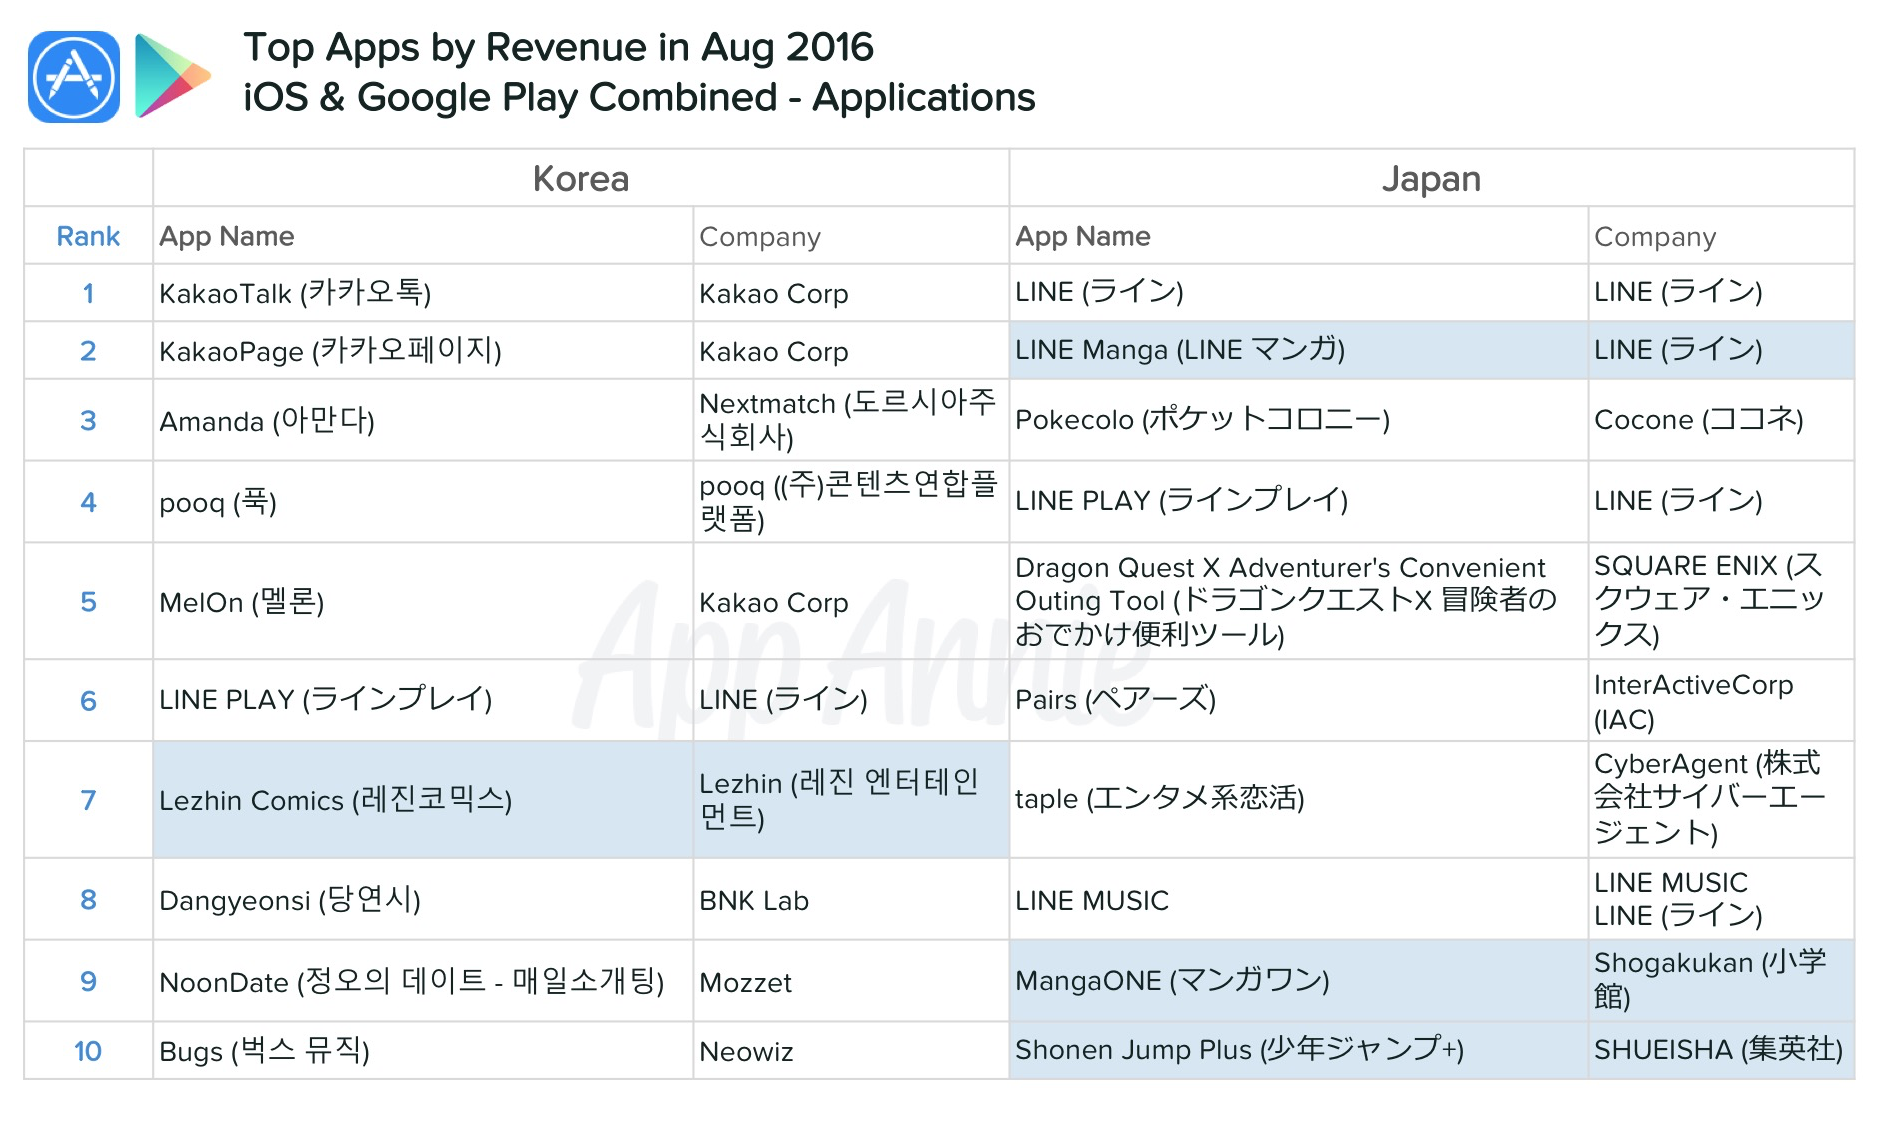 top-apps-revenue-august-2016-ios-google-play-combined